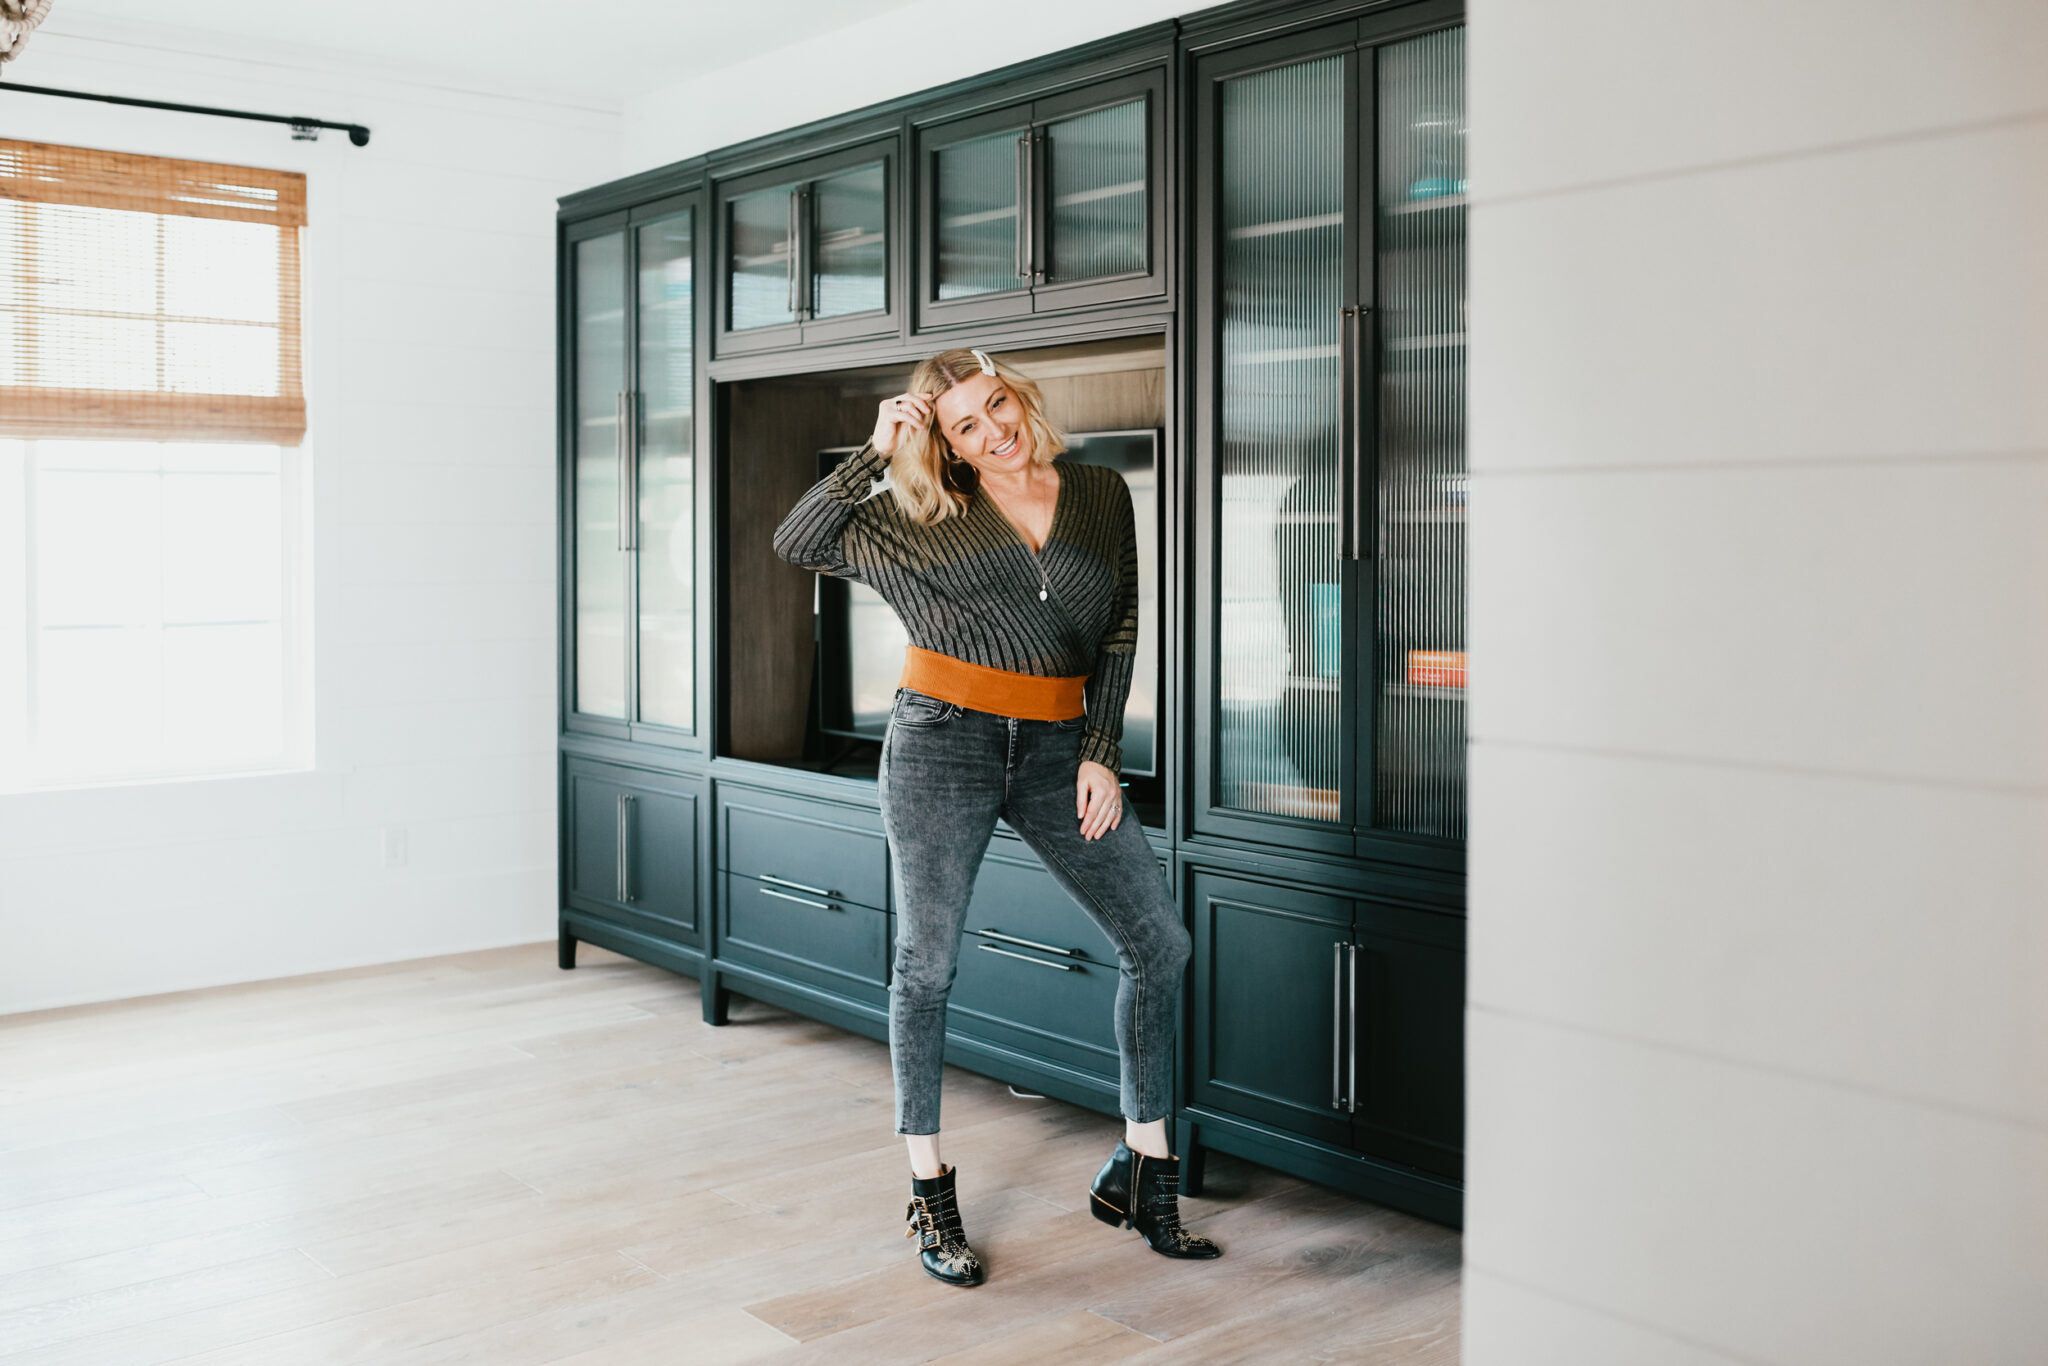 stylish woman standing in room